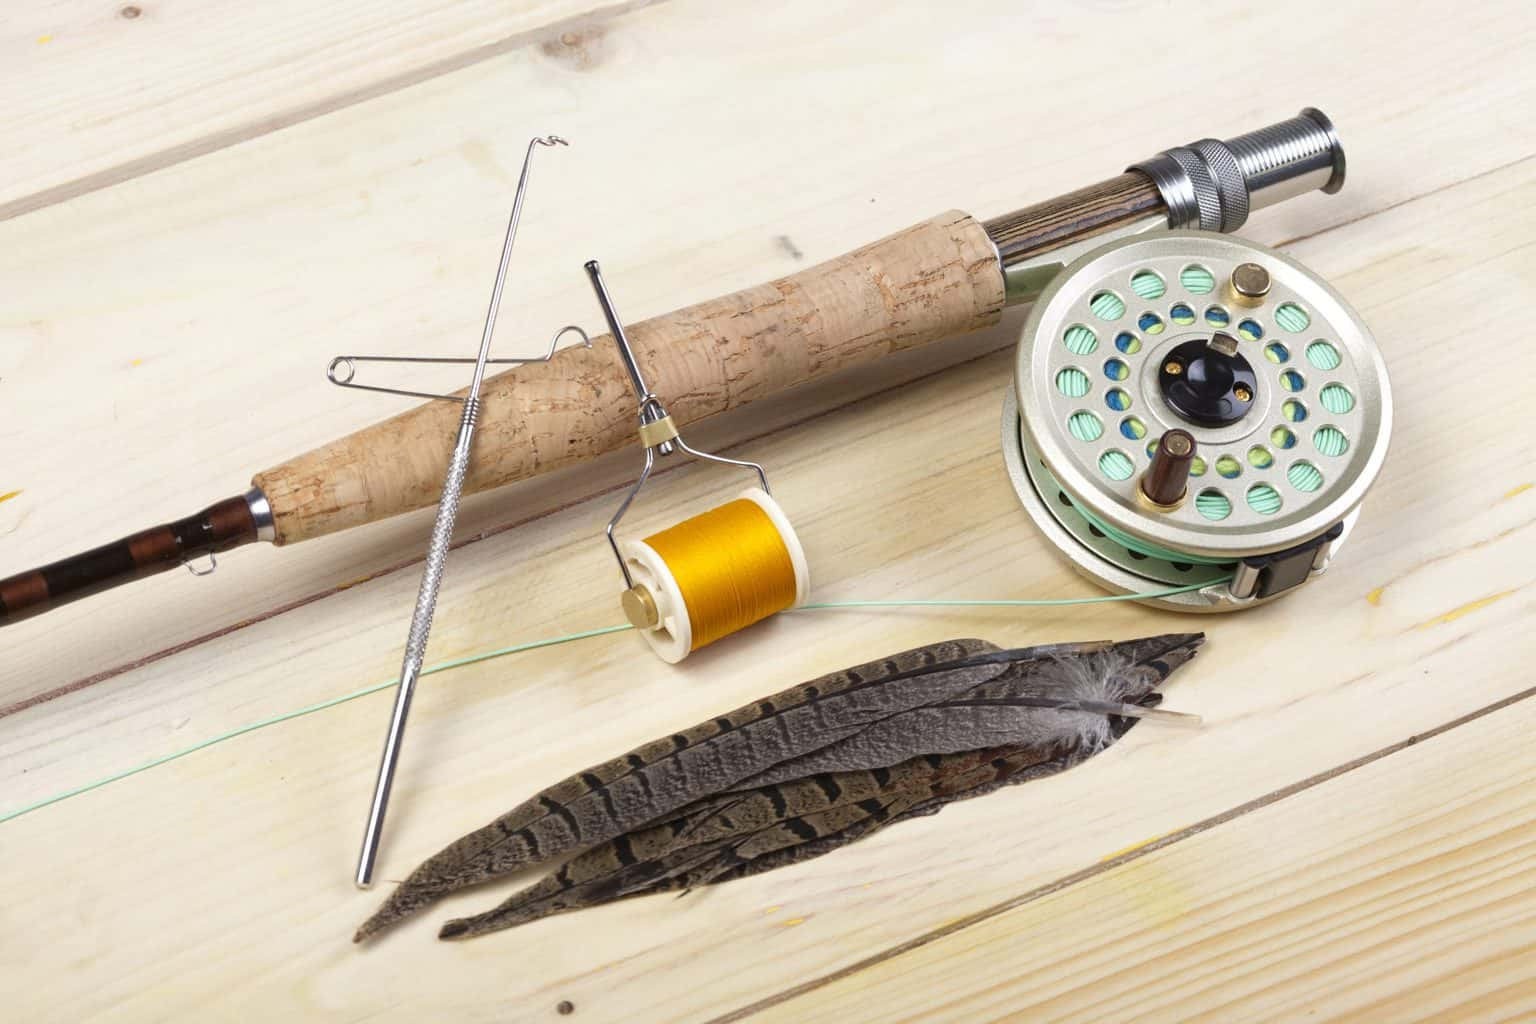 One of the best 5 weight fly rods on a wooden surface with feathers next to it